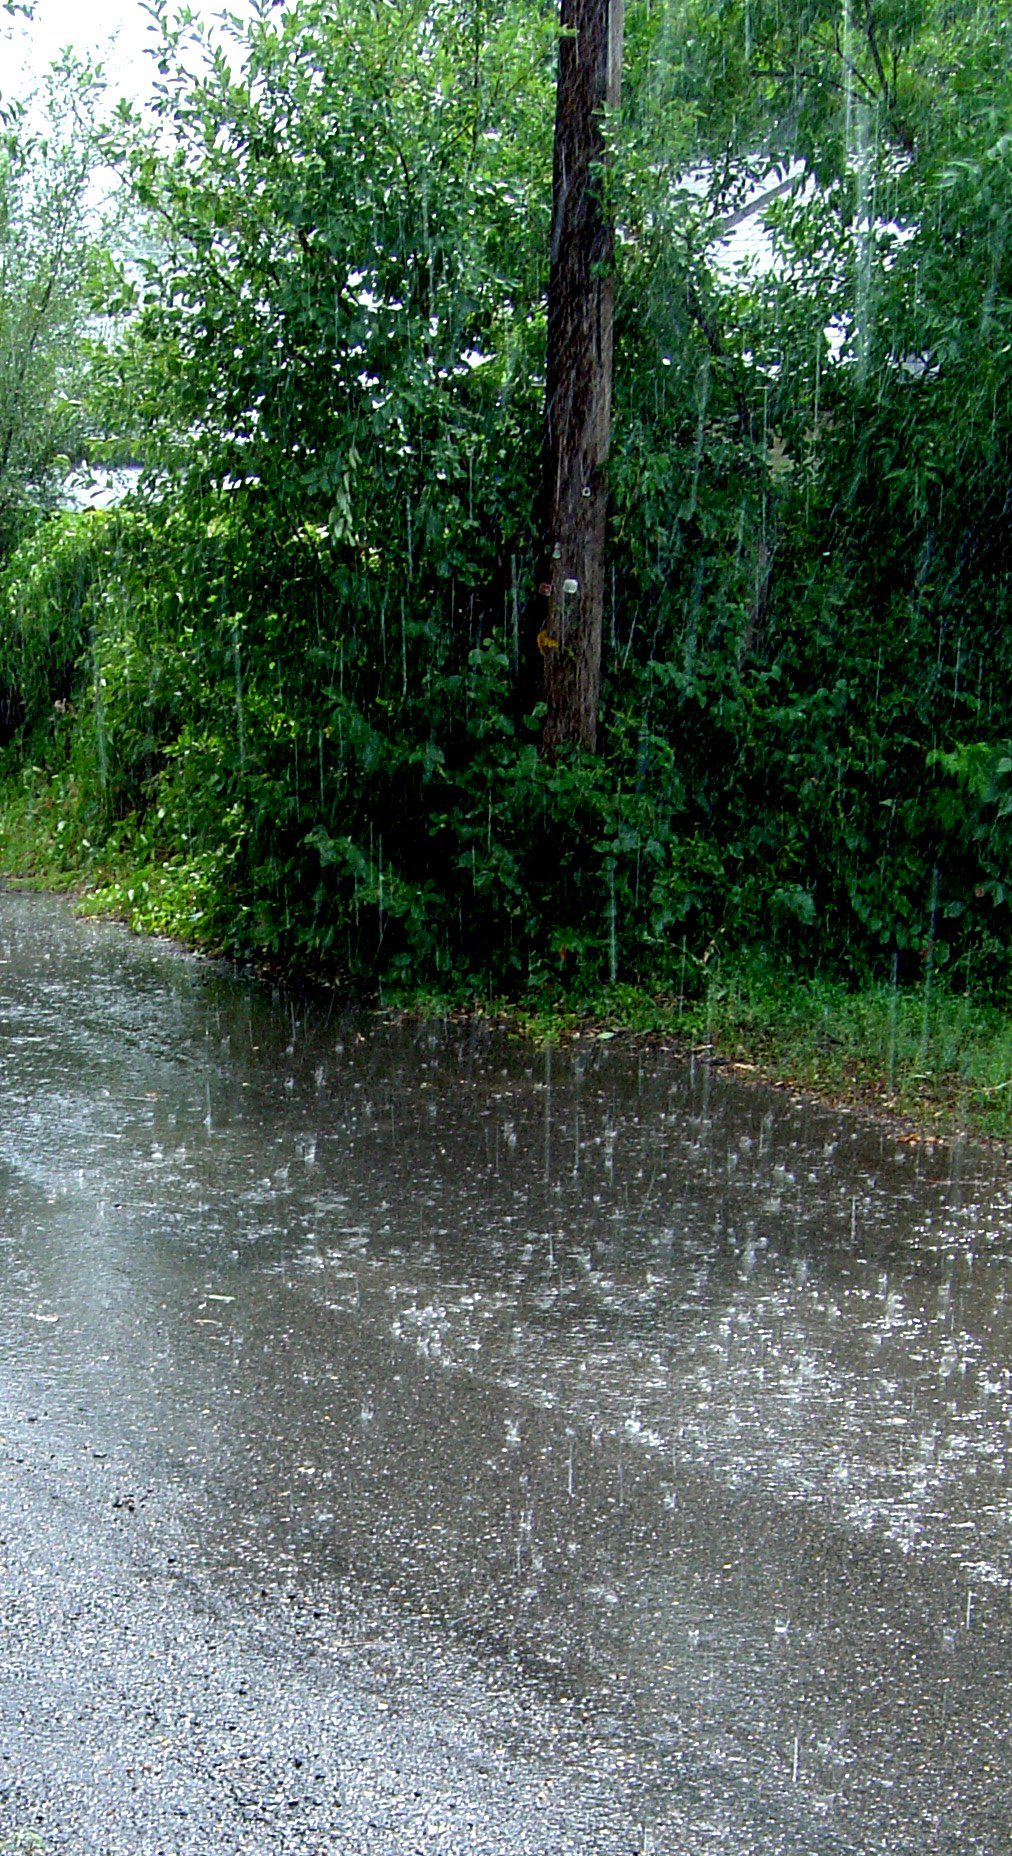 Telephone Pole in Rain Shower Picture  Free Photograph